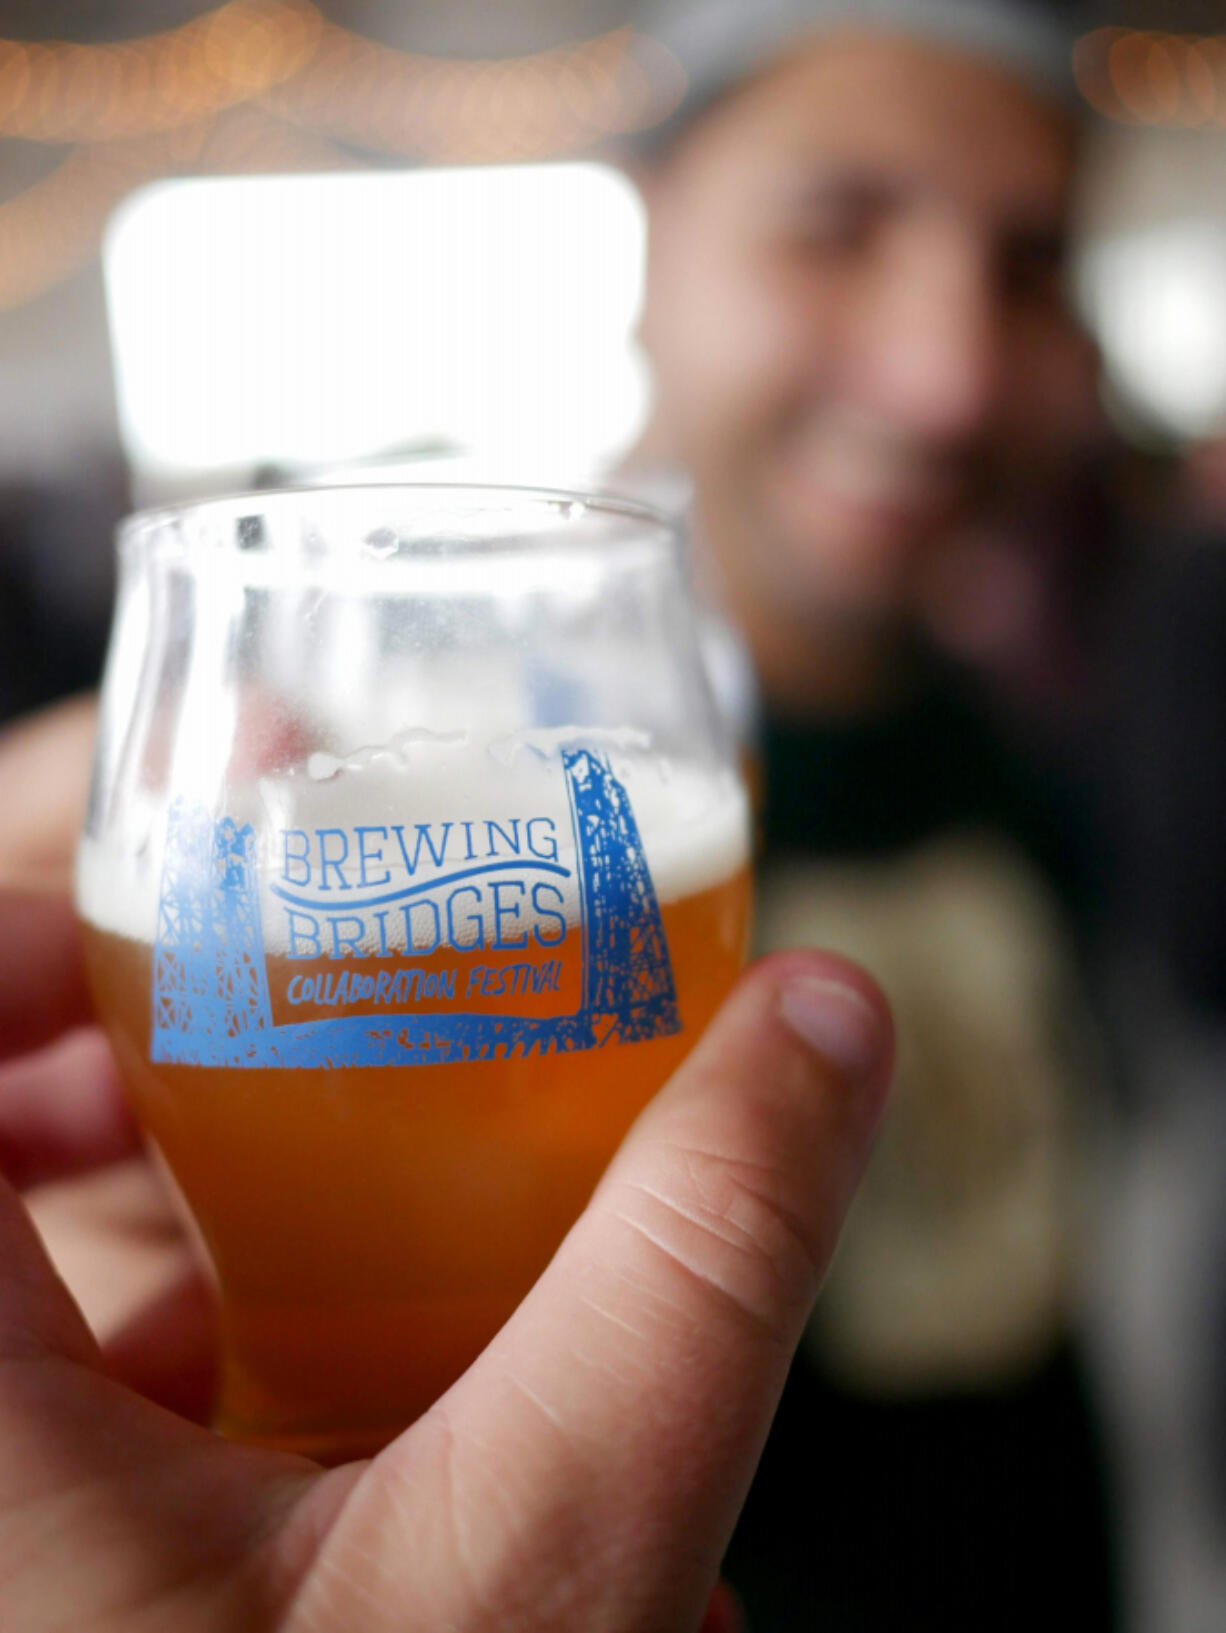 The Brewing Bridges Collaboration Festival features collaboratively brewed beer from Southwest Washington and Portland.